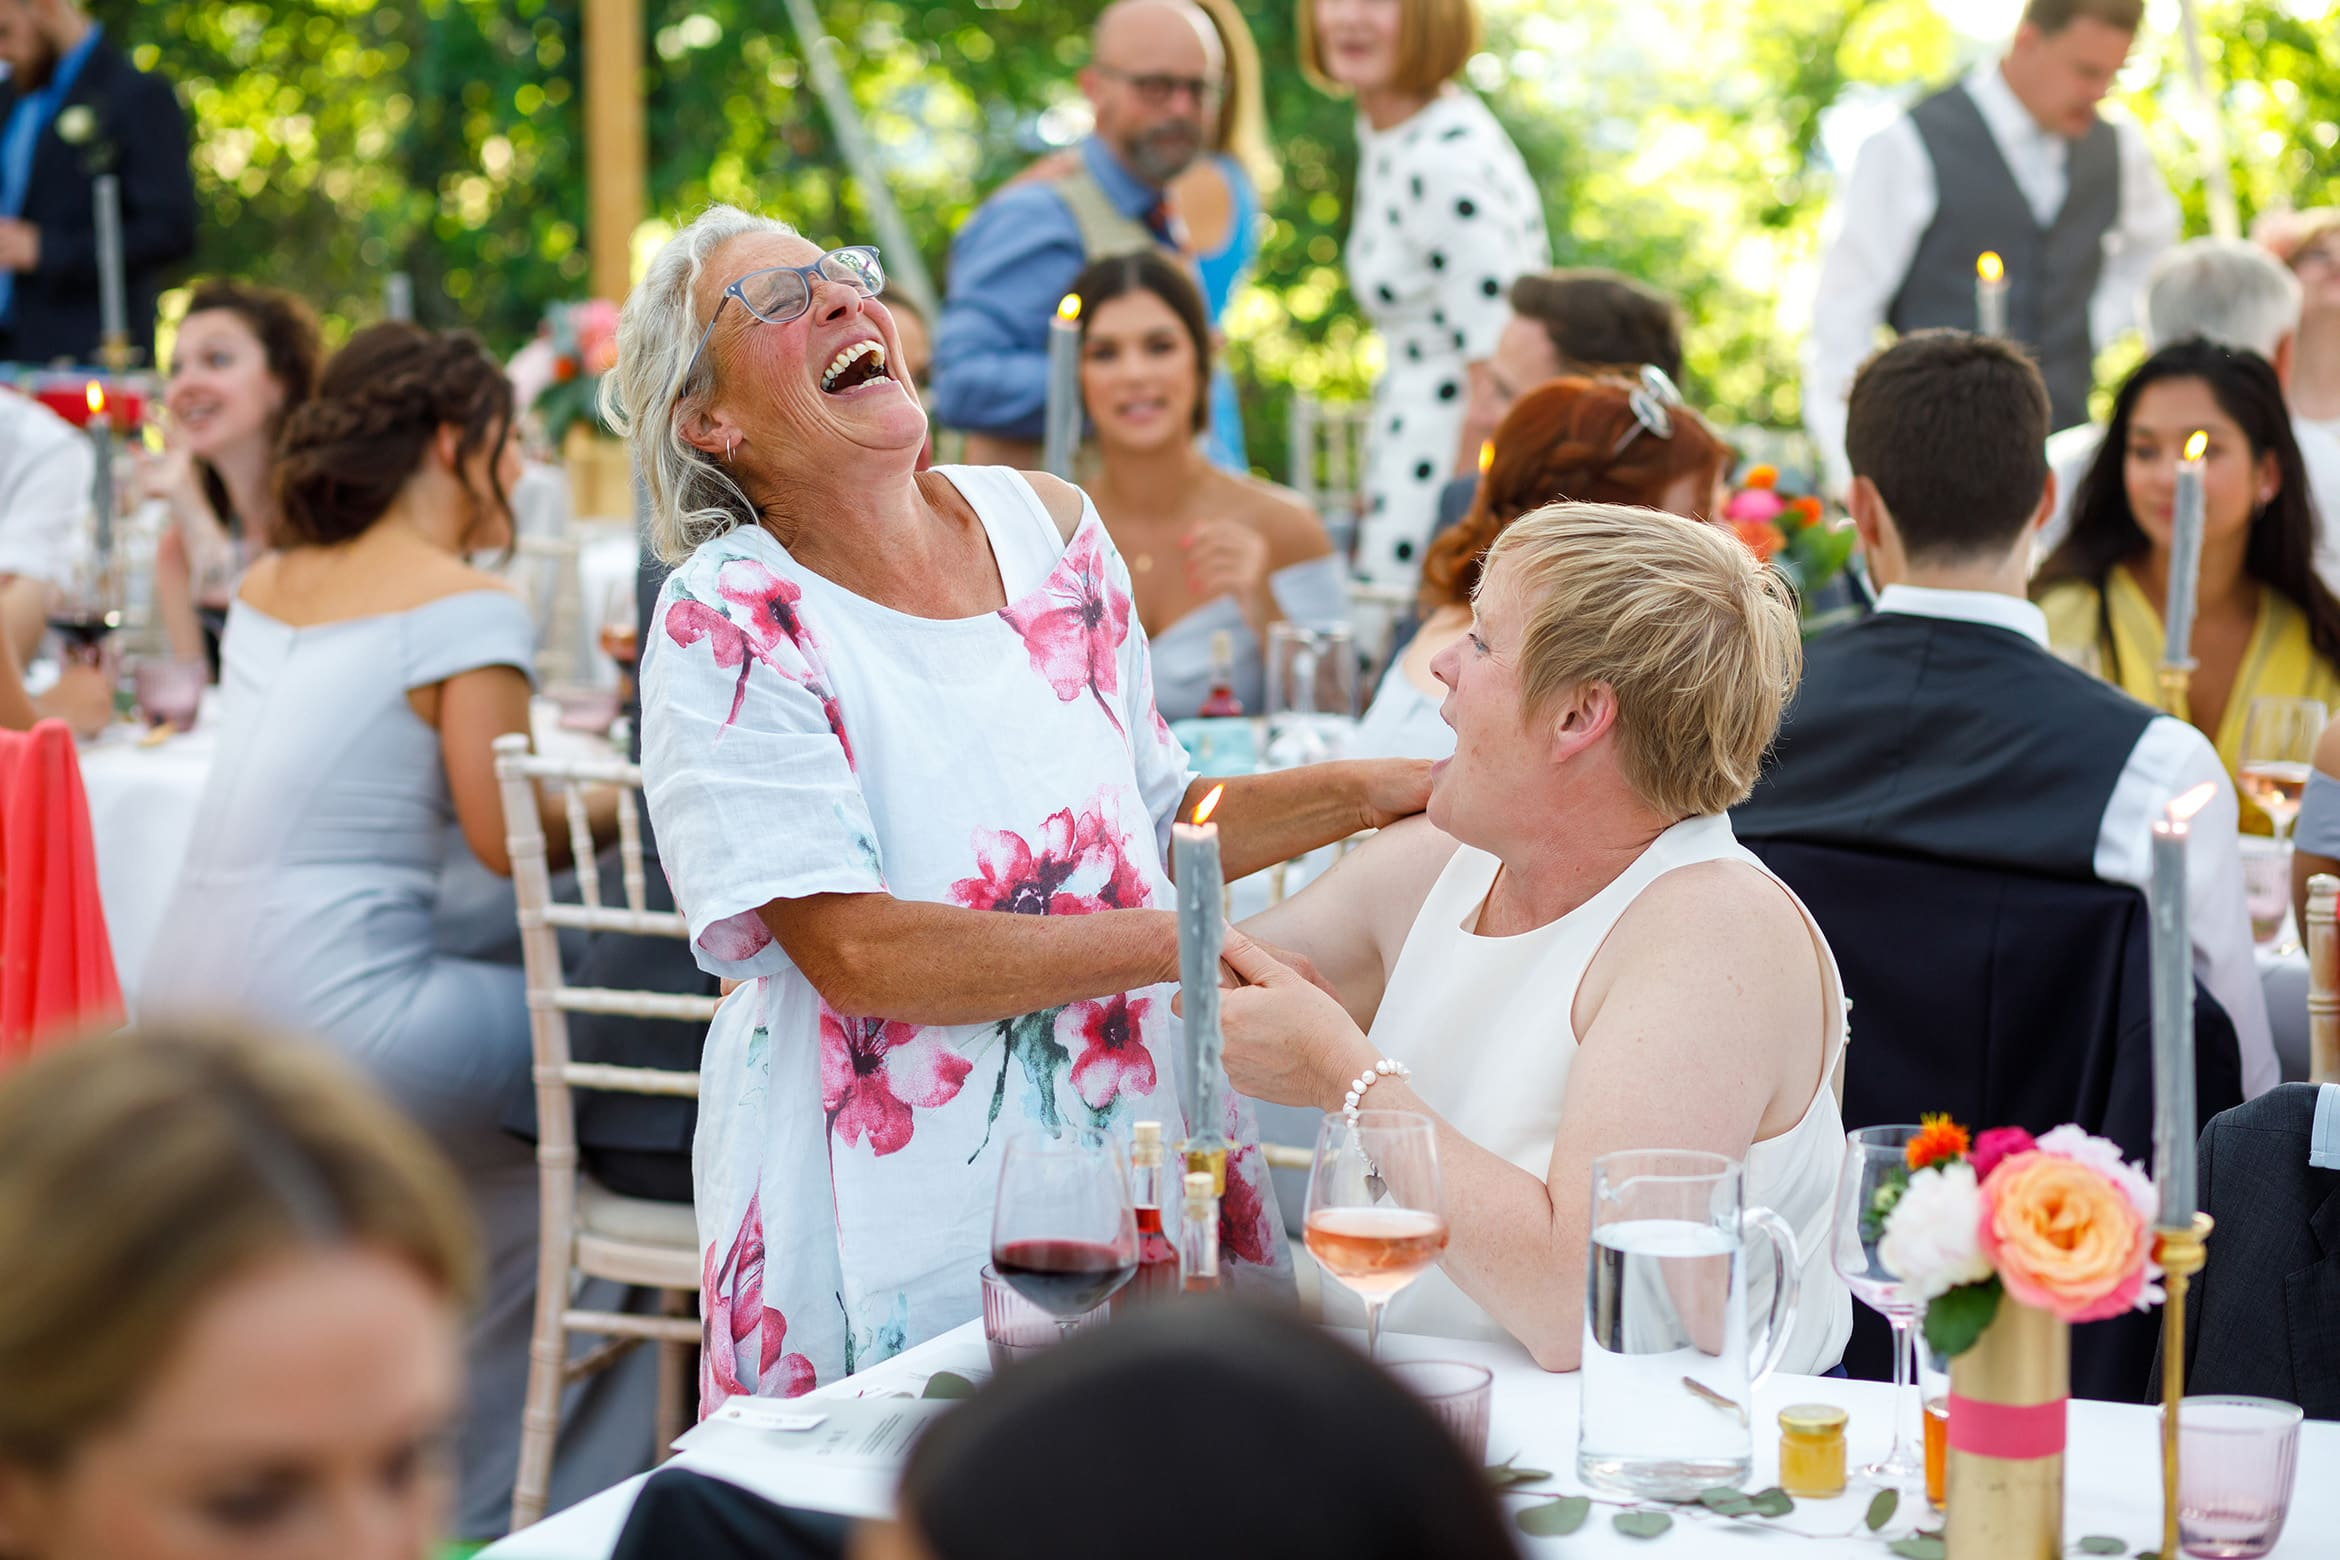 tow wedding guests share a joke